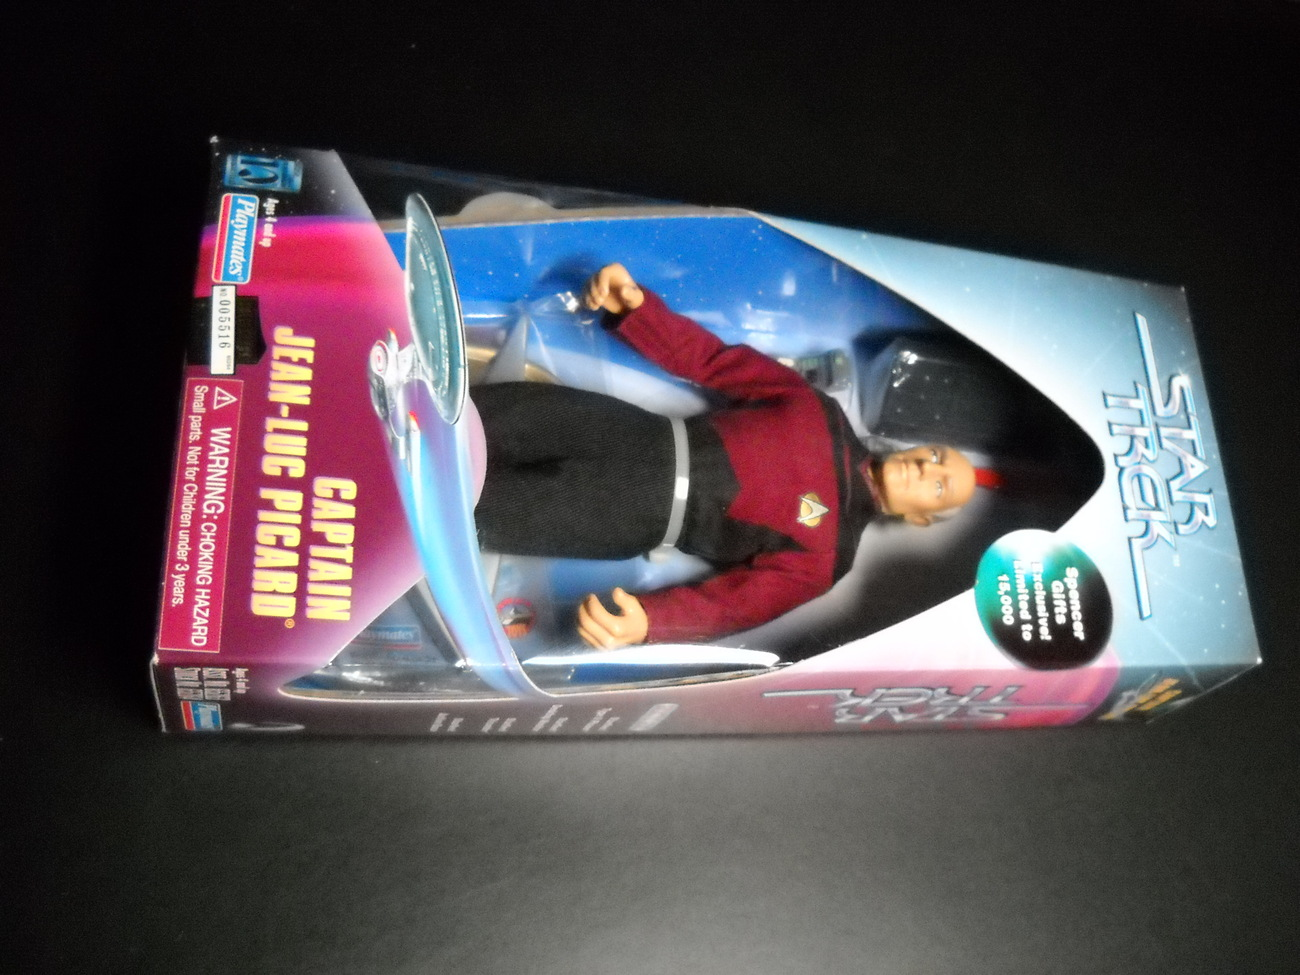 Toy star trek playmates spencer gifts exclusive captain jean luc picard 1997 9 inch boxed sealed 01